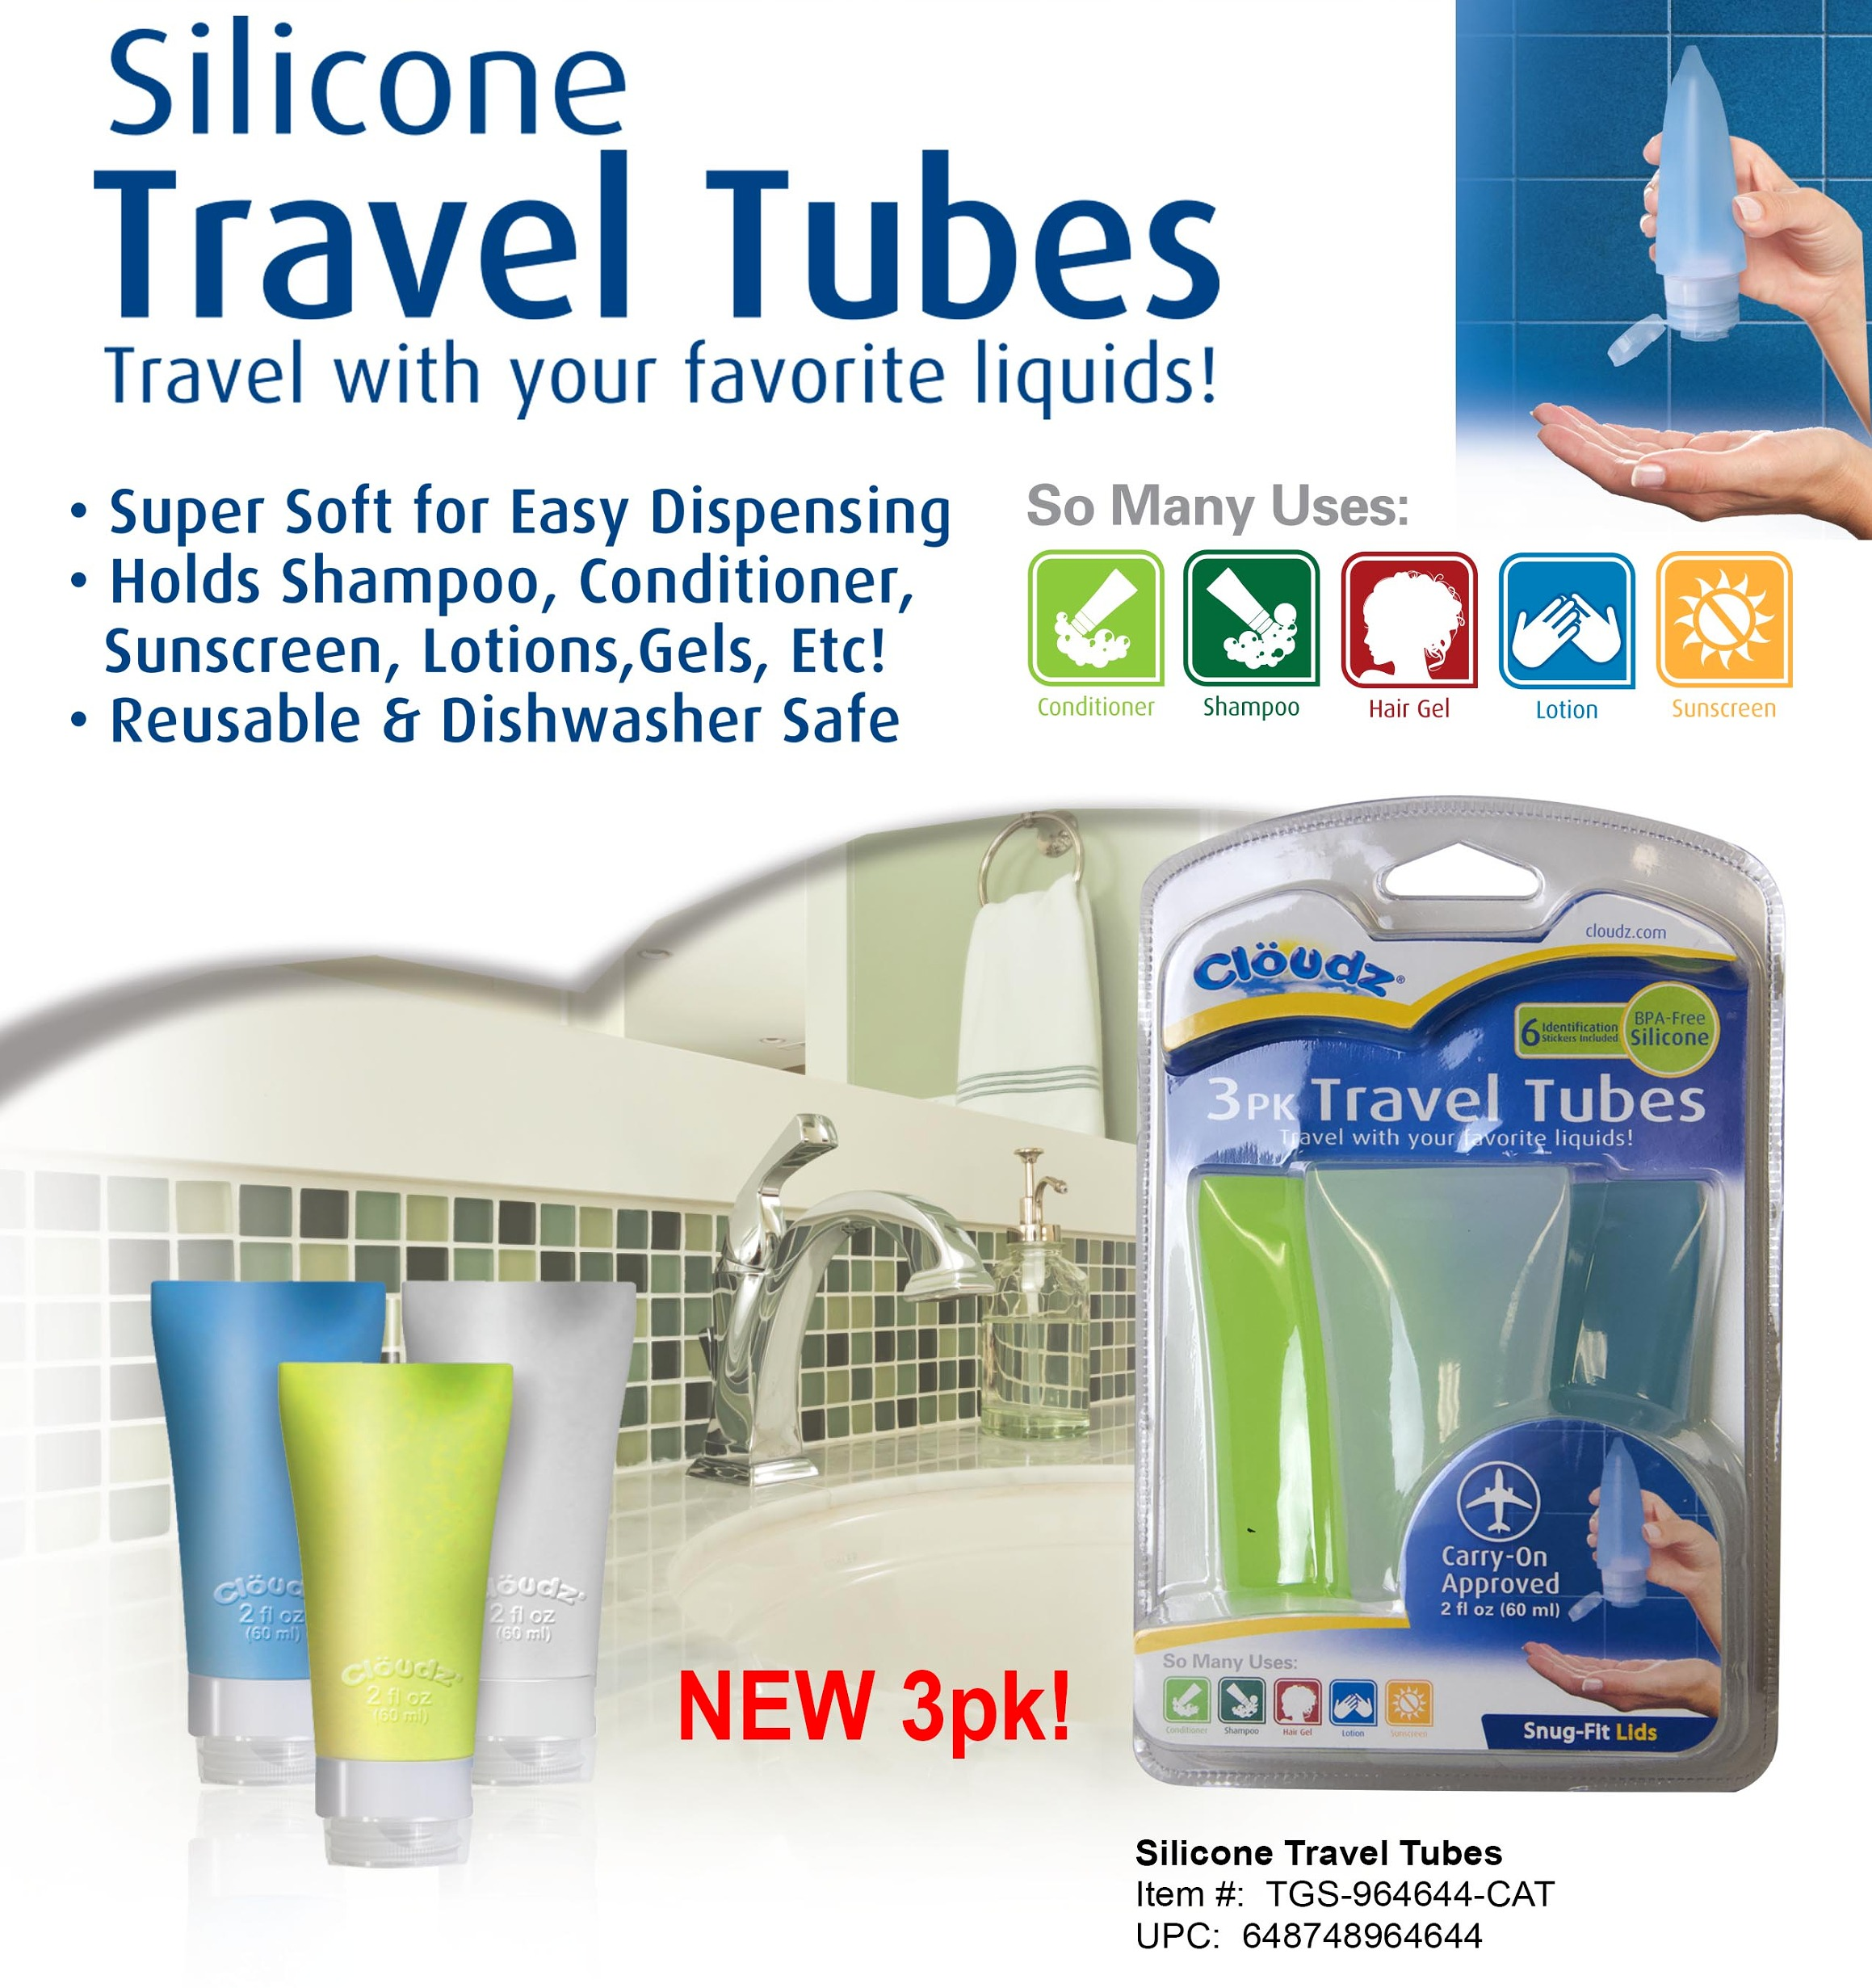 SNI Today - Cloudz 3 Pack Travel Tube Se